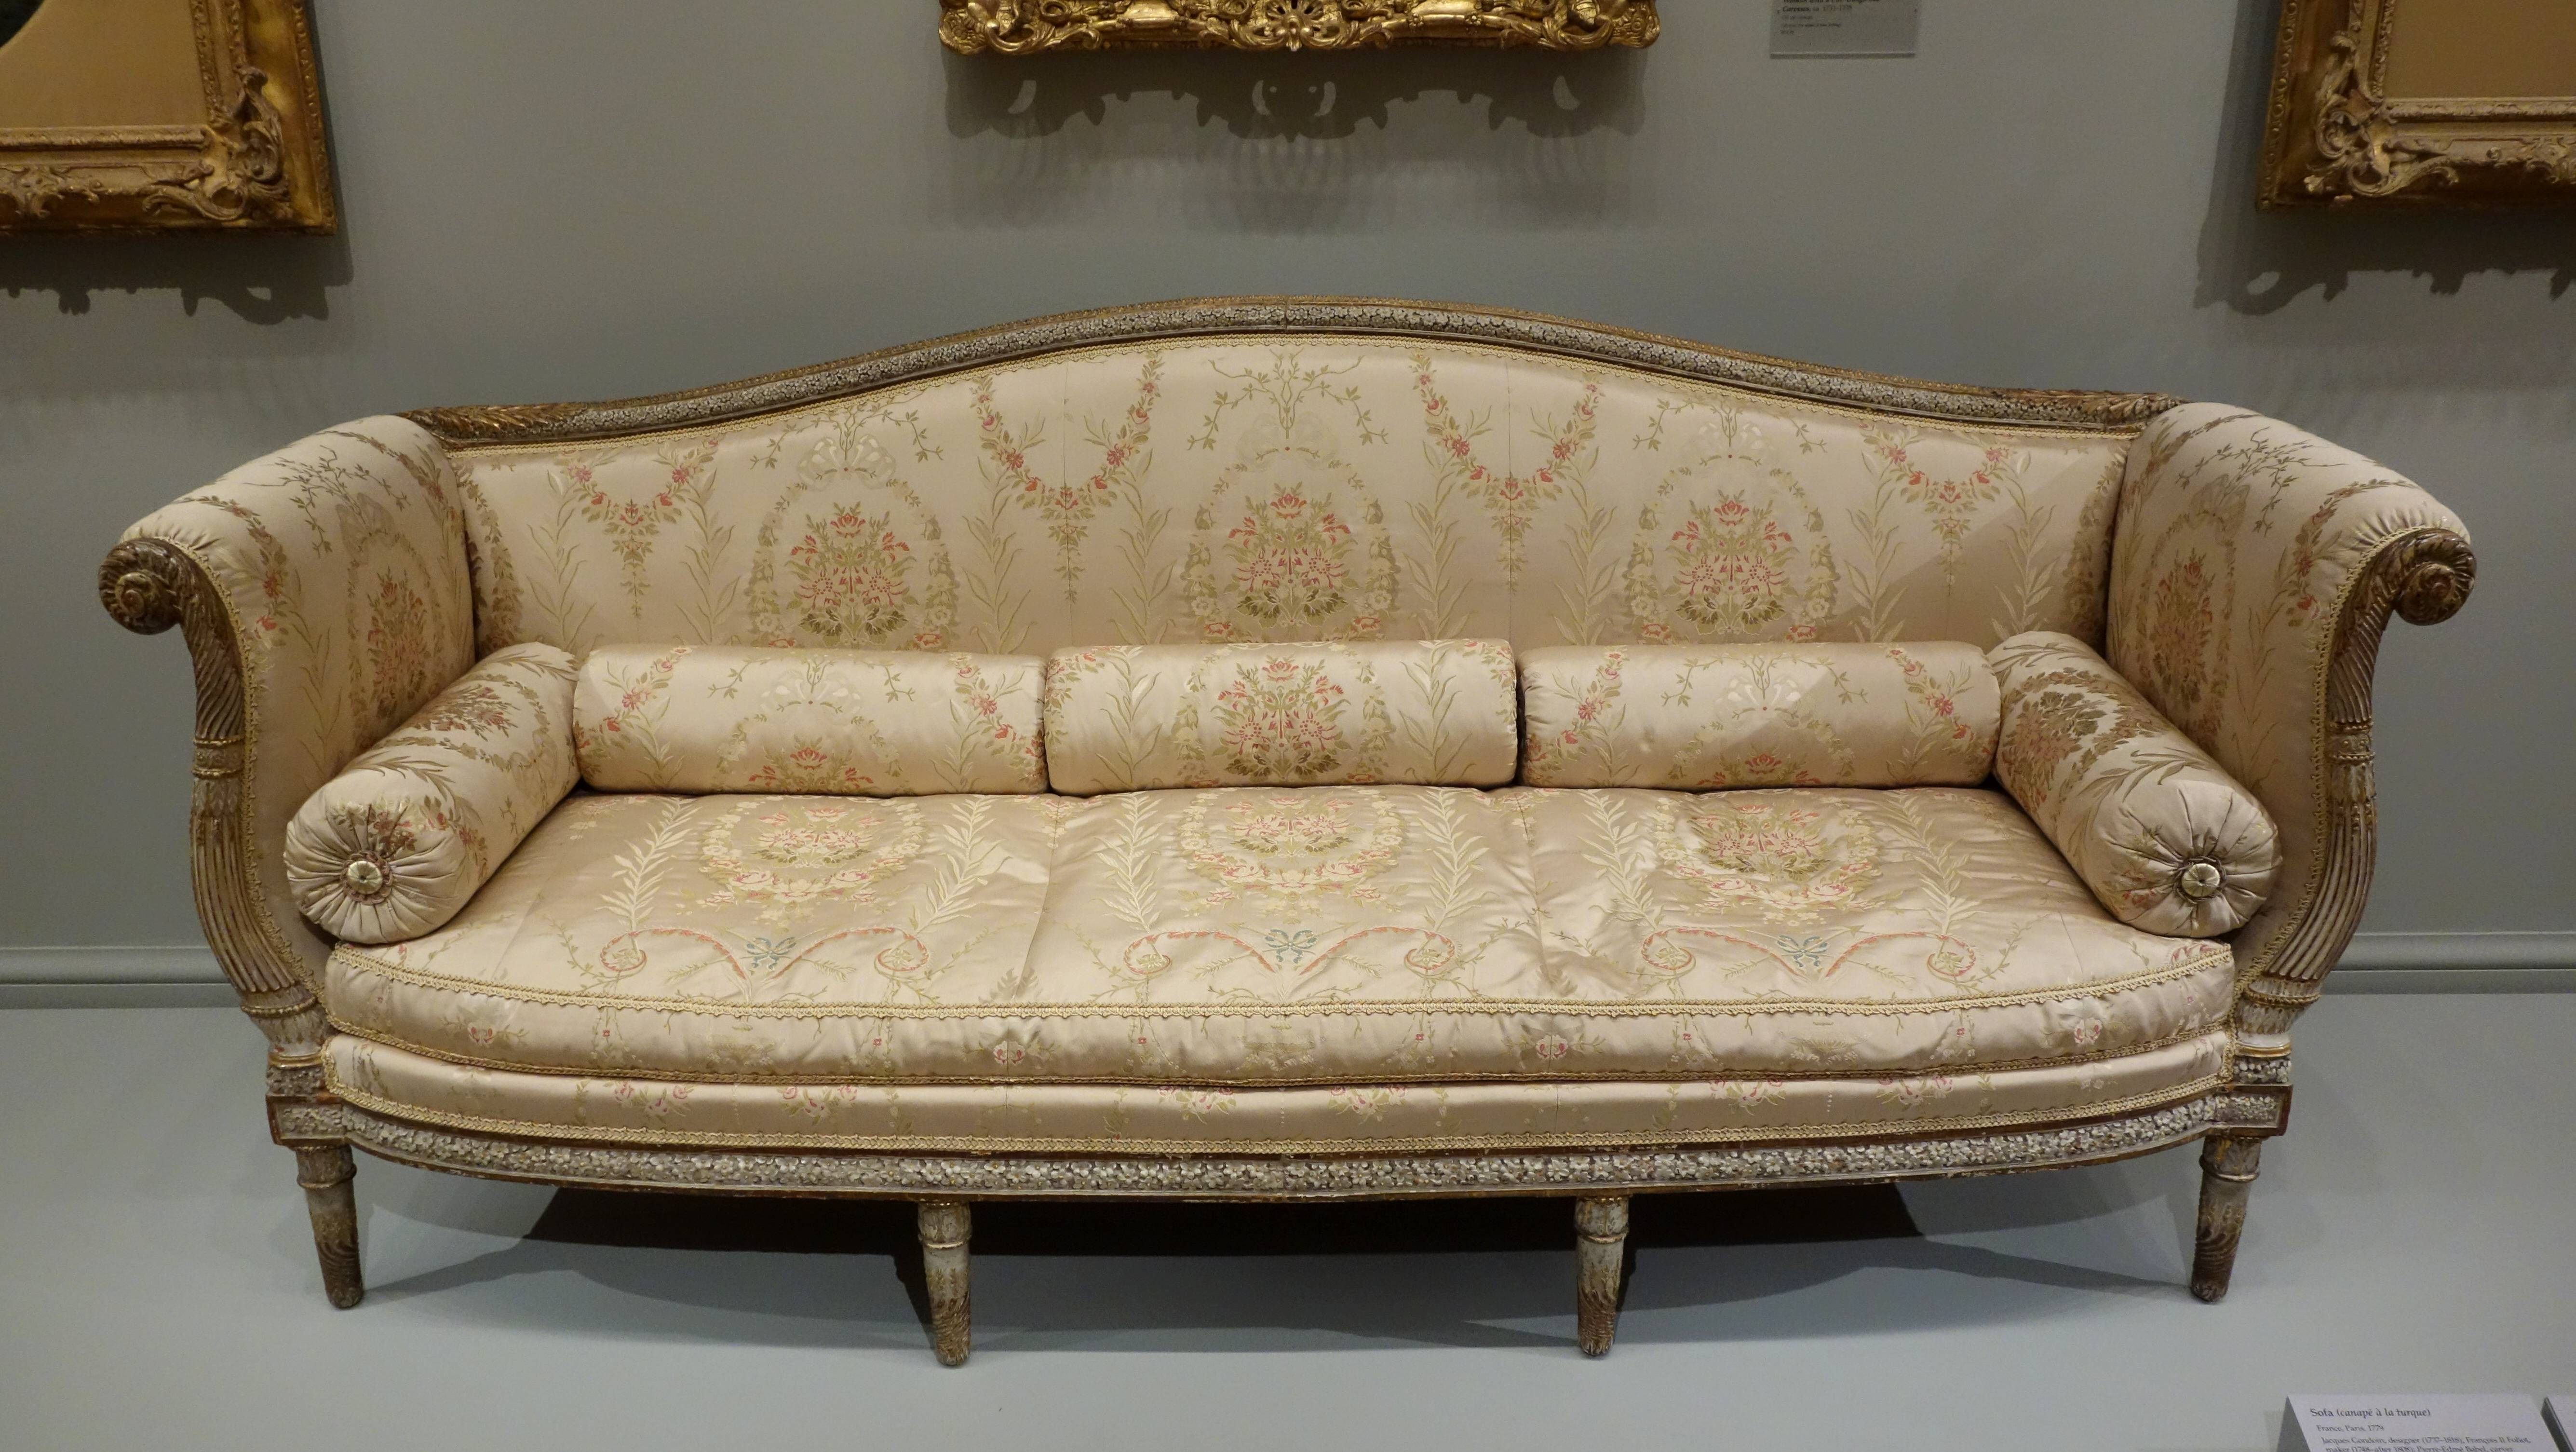 File:sofa For Marie-Antoinette's Private Sitting Room At pertaining to Antoinette Sofas (Image 8 of 15)